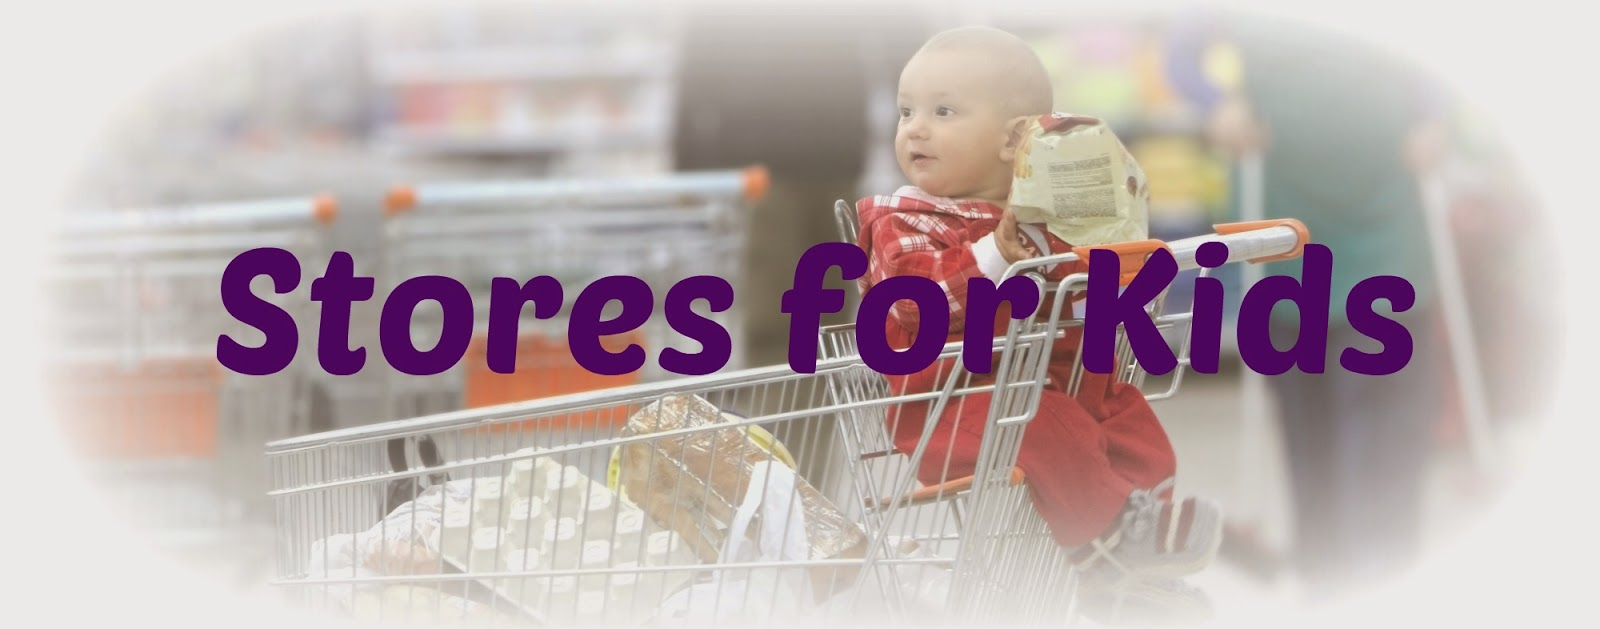 Mega Furniture Superstore Baby Stores | Small Big Things